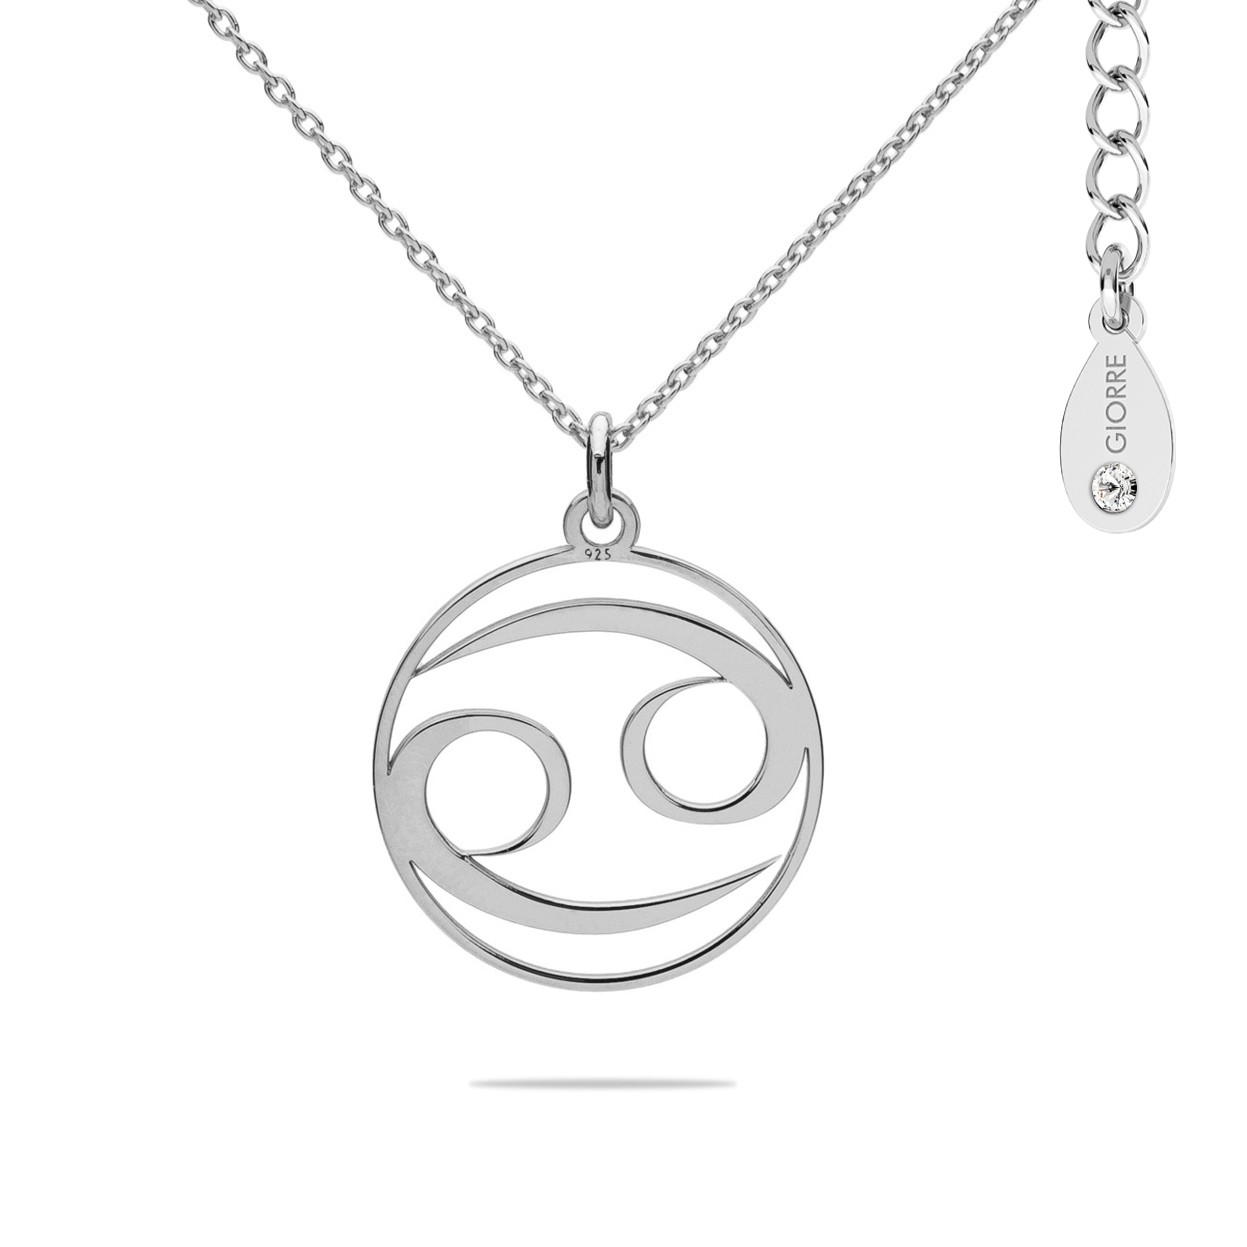 CANCER zodiac sign necklace with Swarovski Crystals sterling silver 925